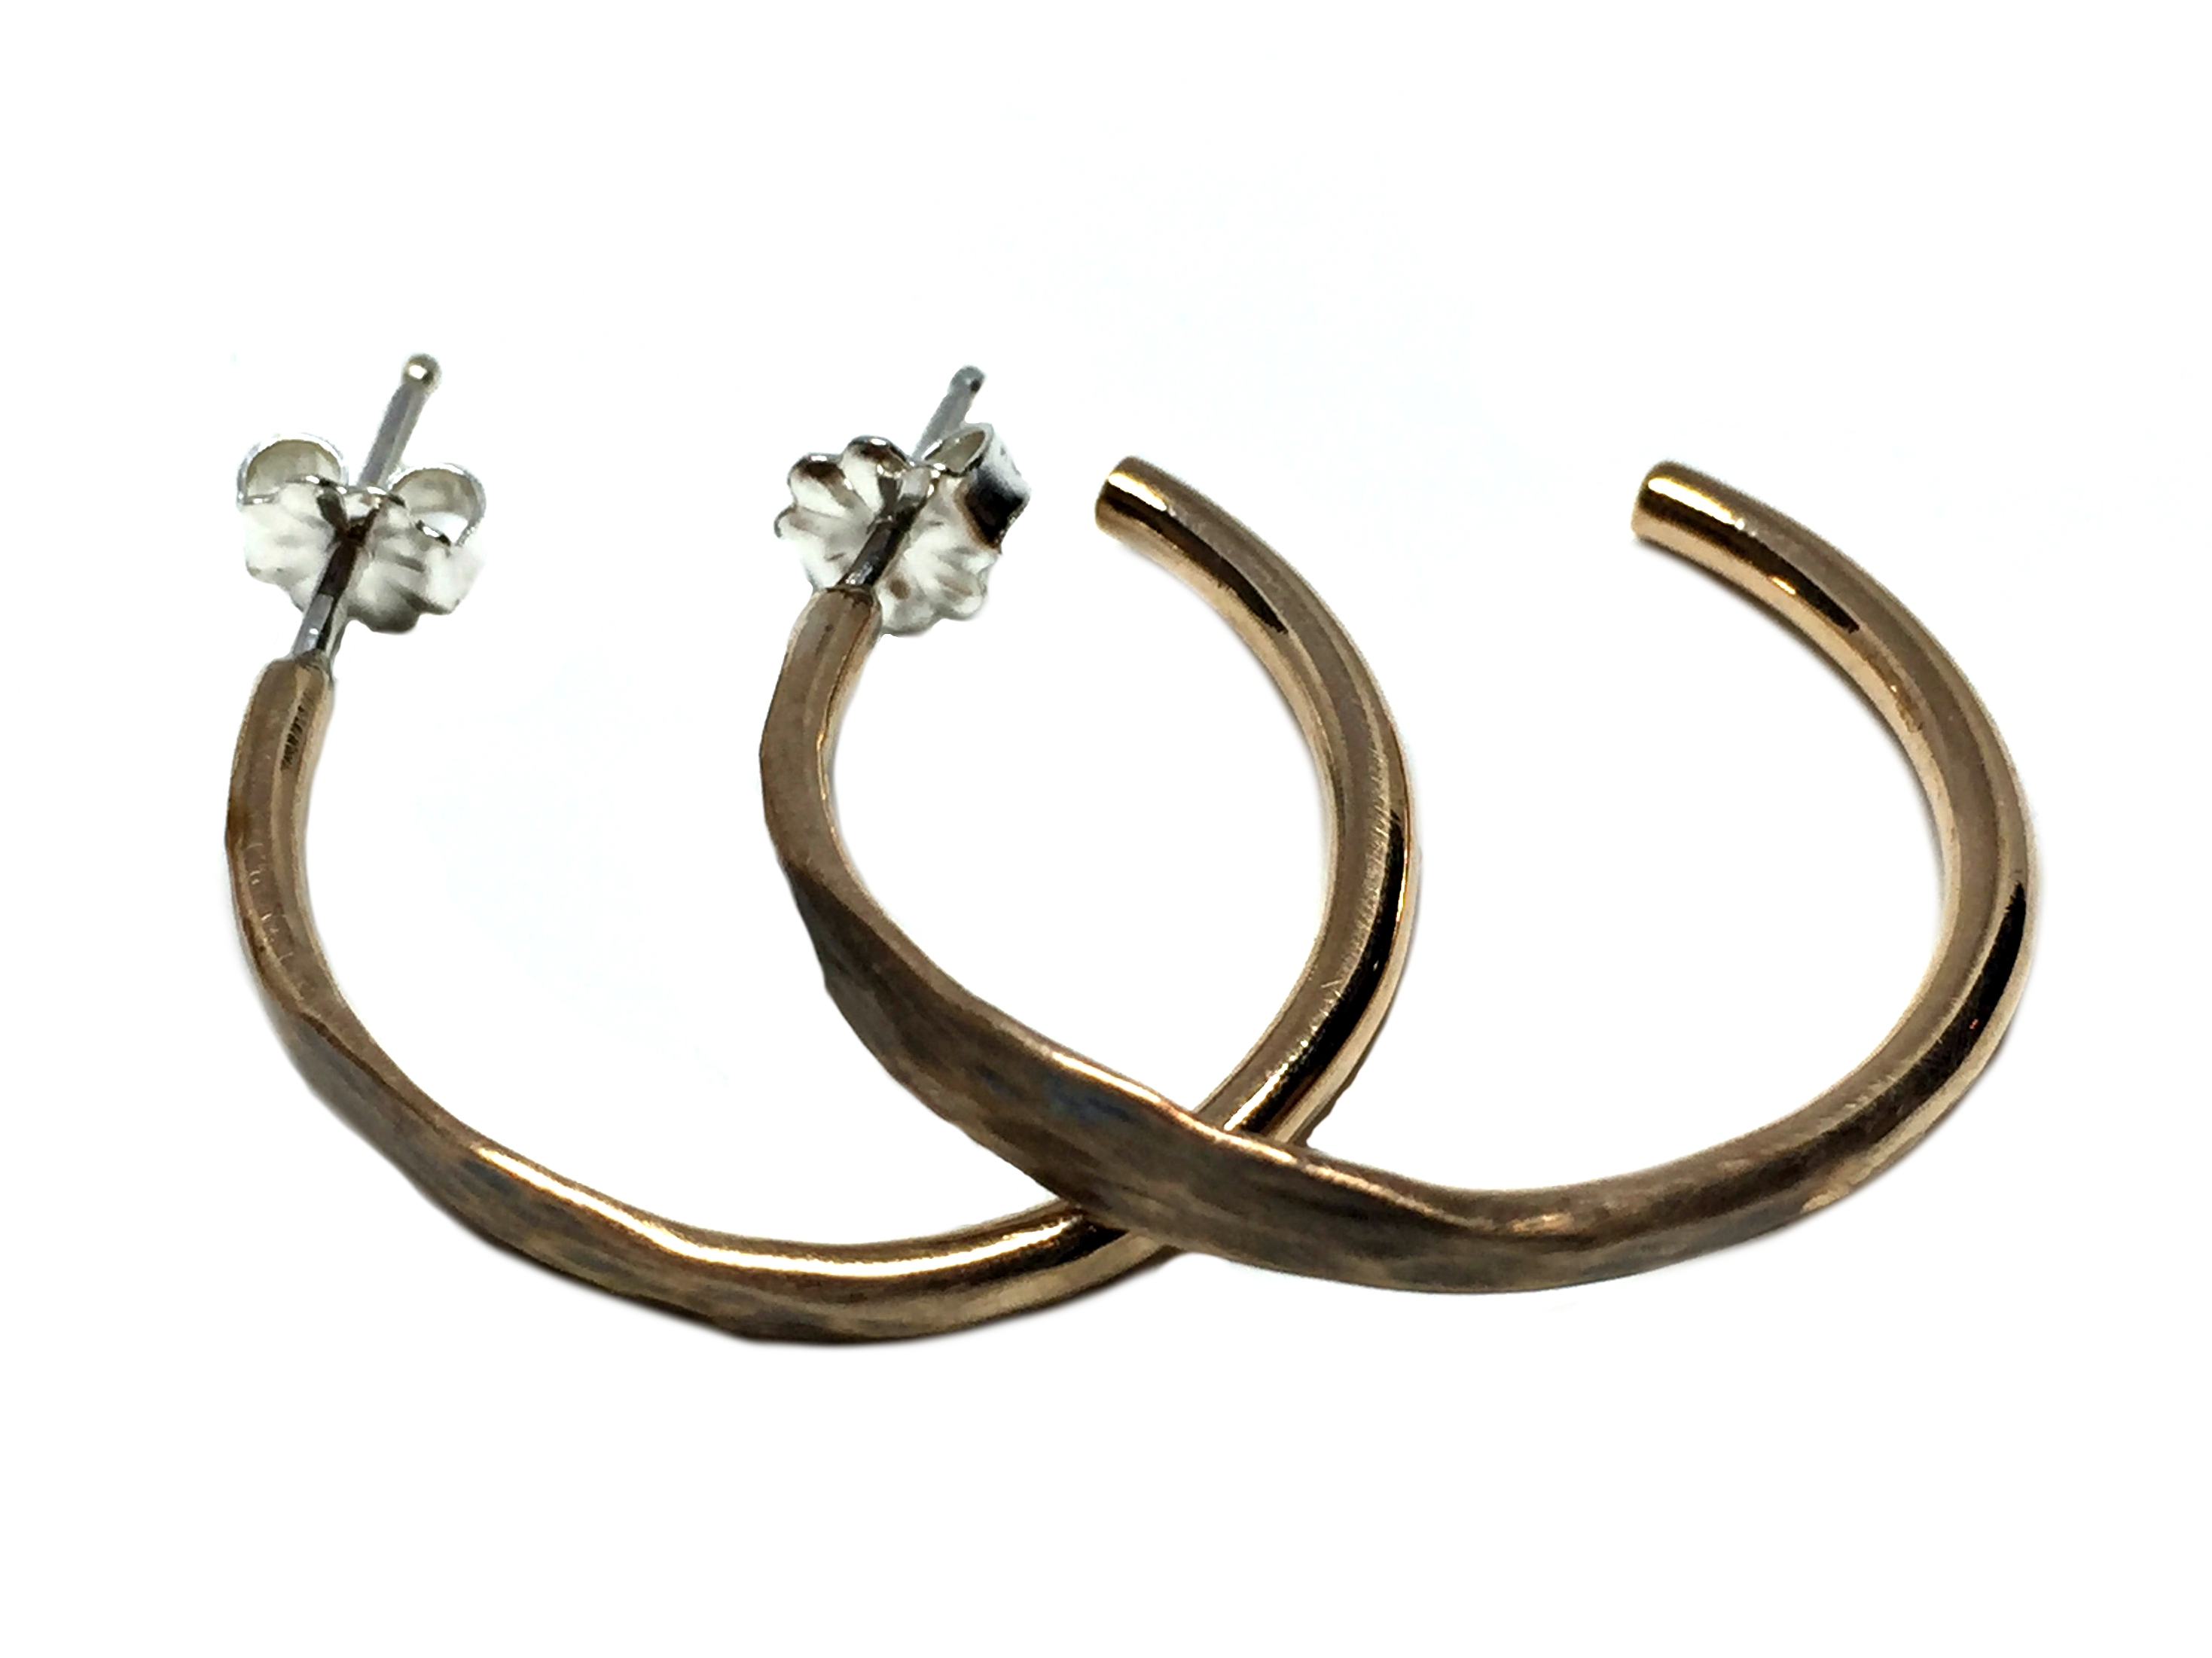 Small Bronze Hammered Hoop Earrings by Karyn Chopik | Effusion Art Gallery + Cast Glass Studio, Invermere BC